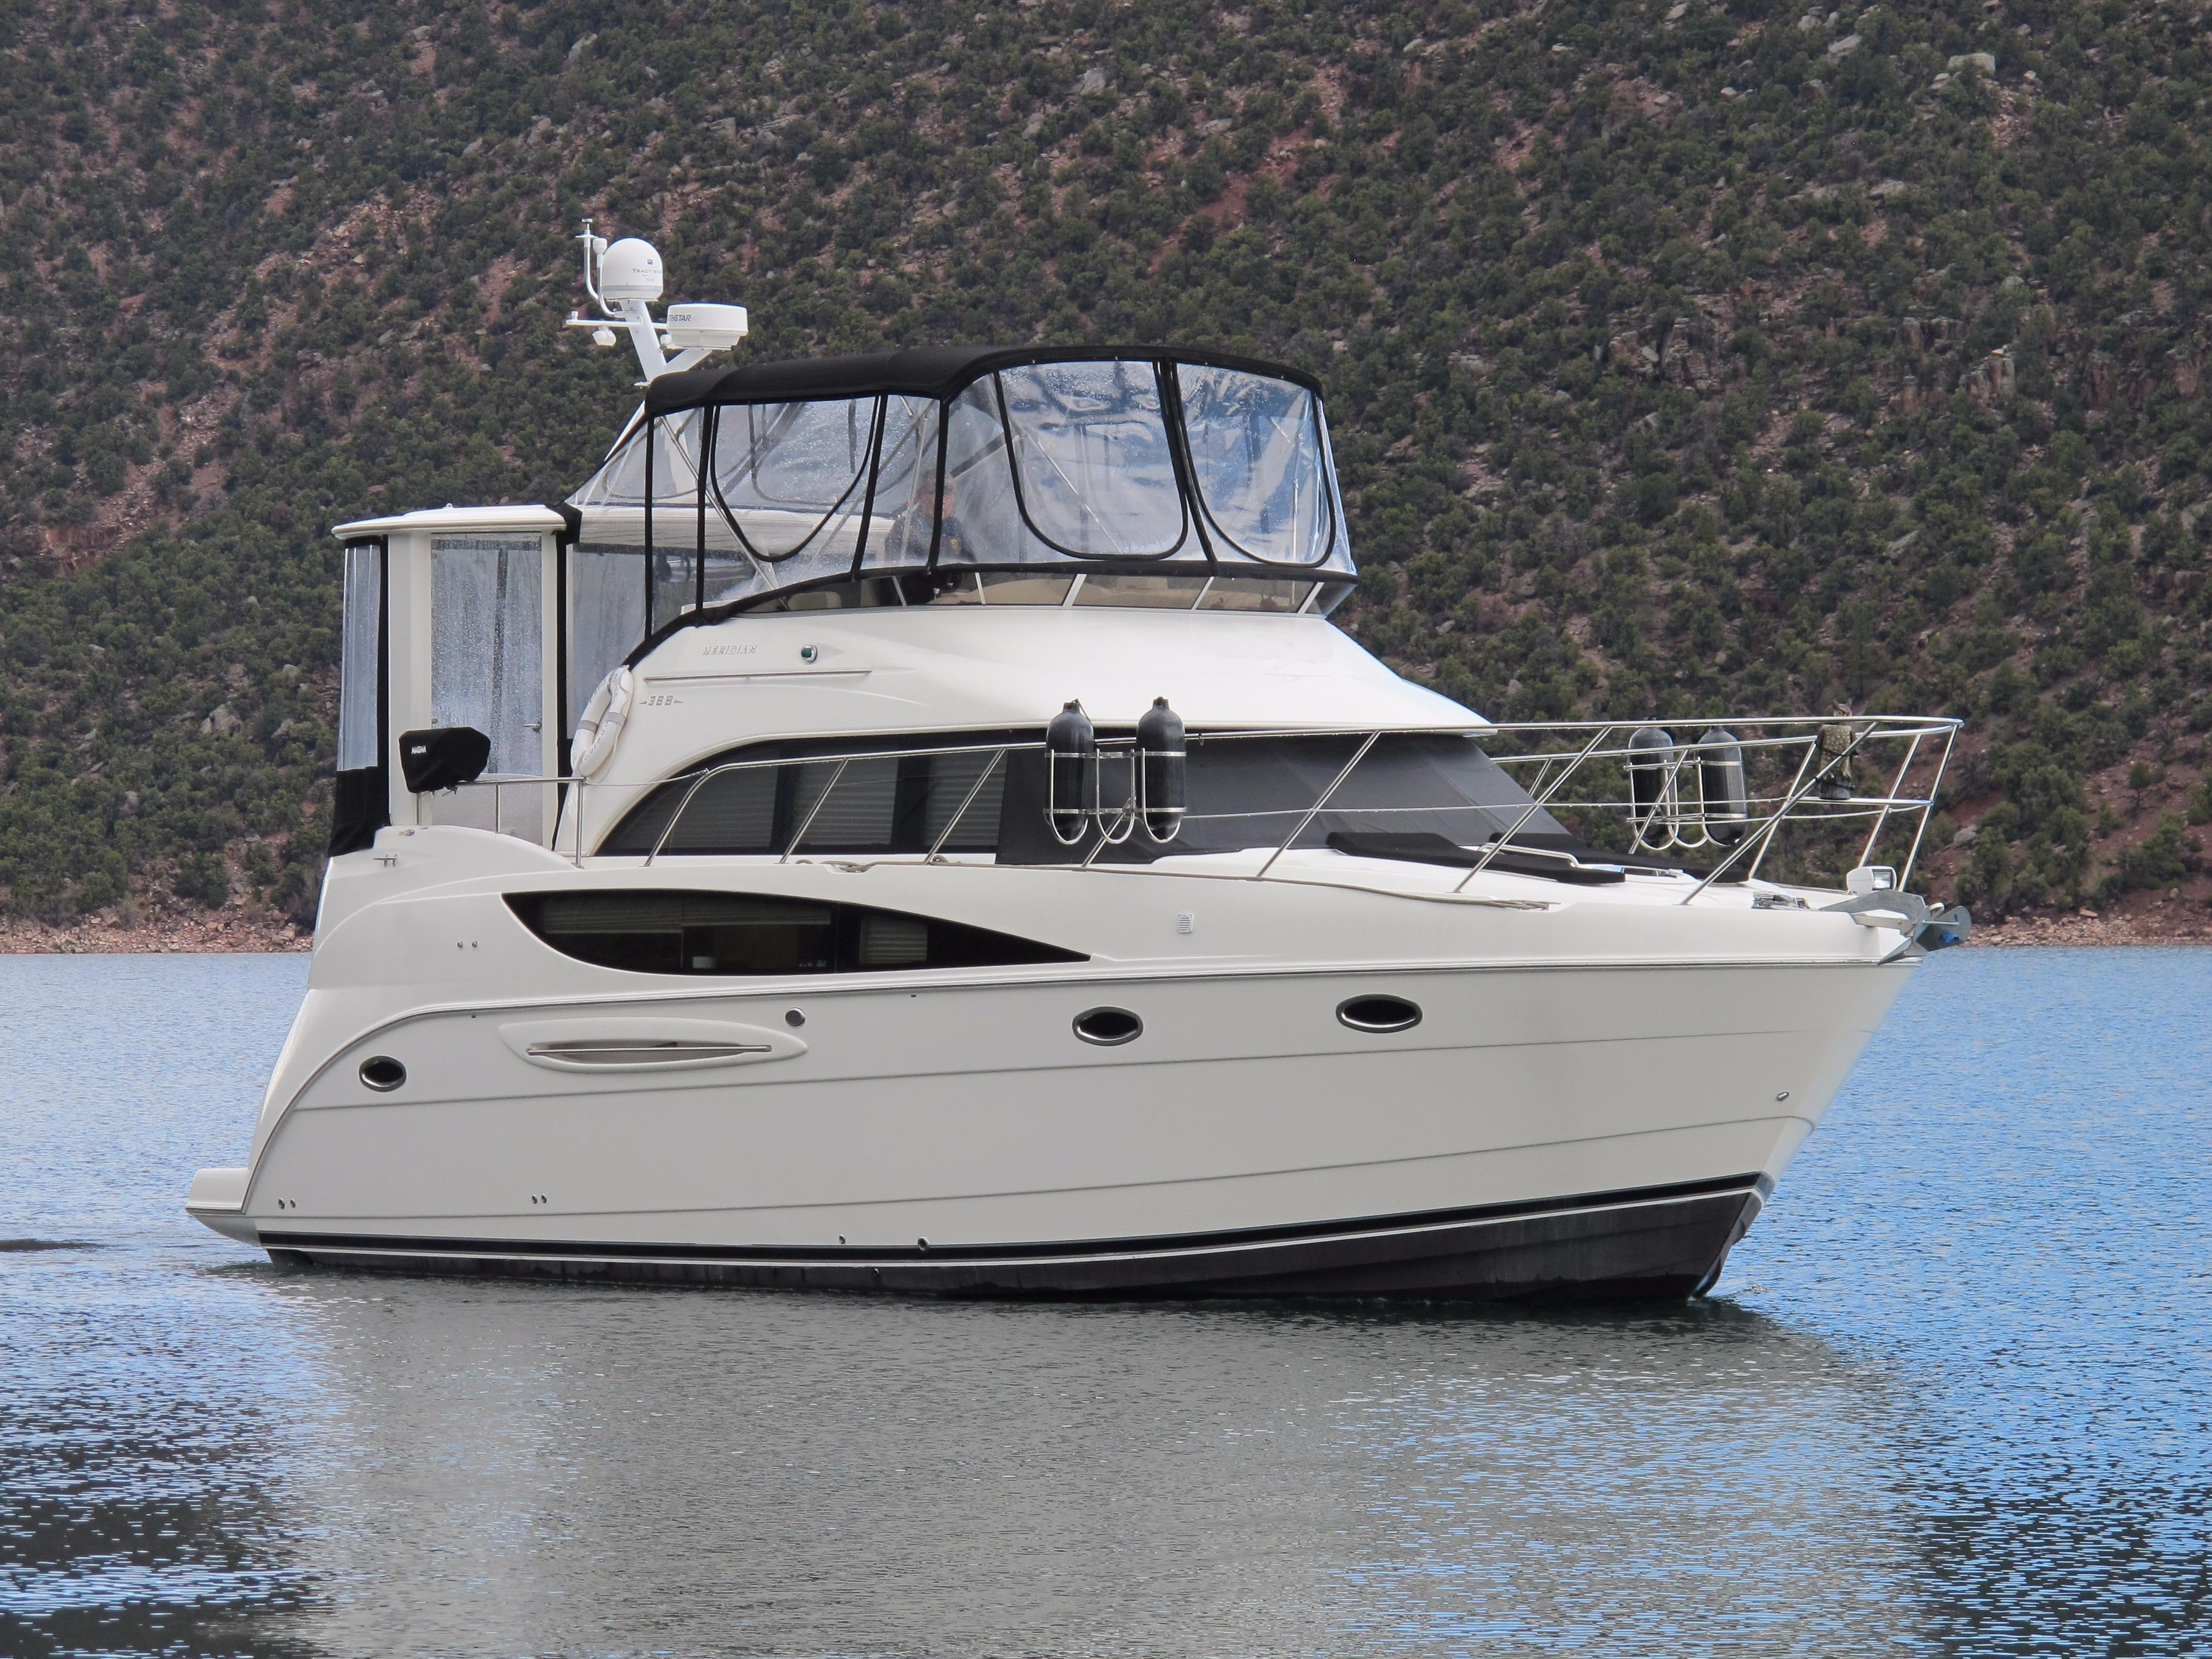 36 Foot Boats For Sale In Ut Boat Listings